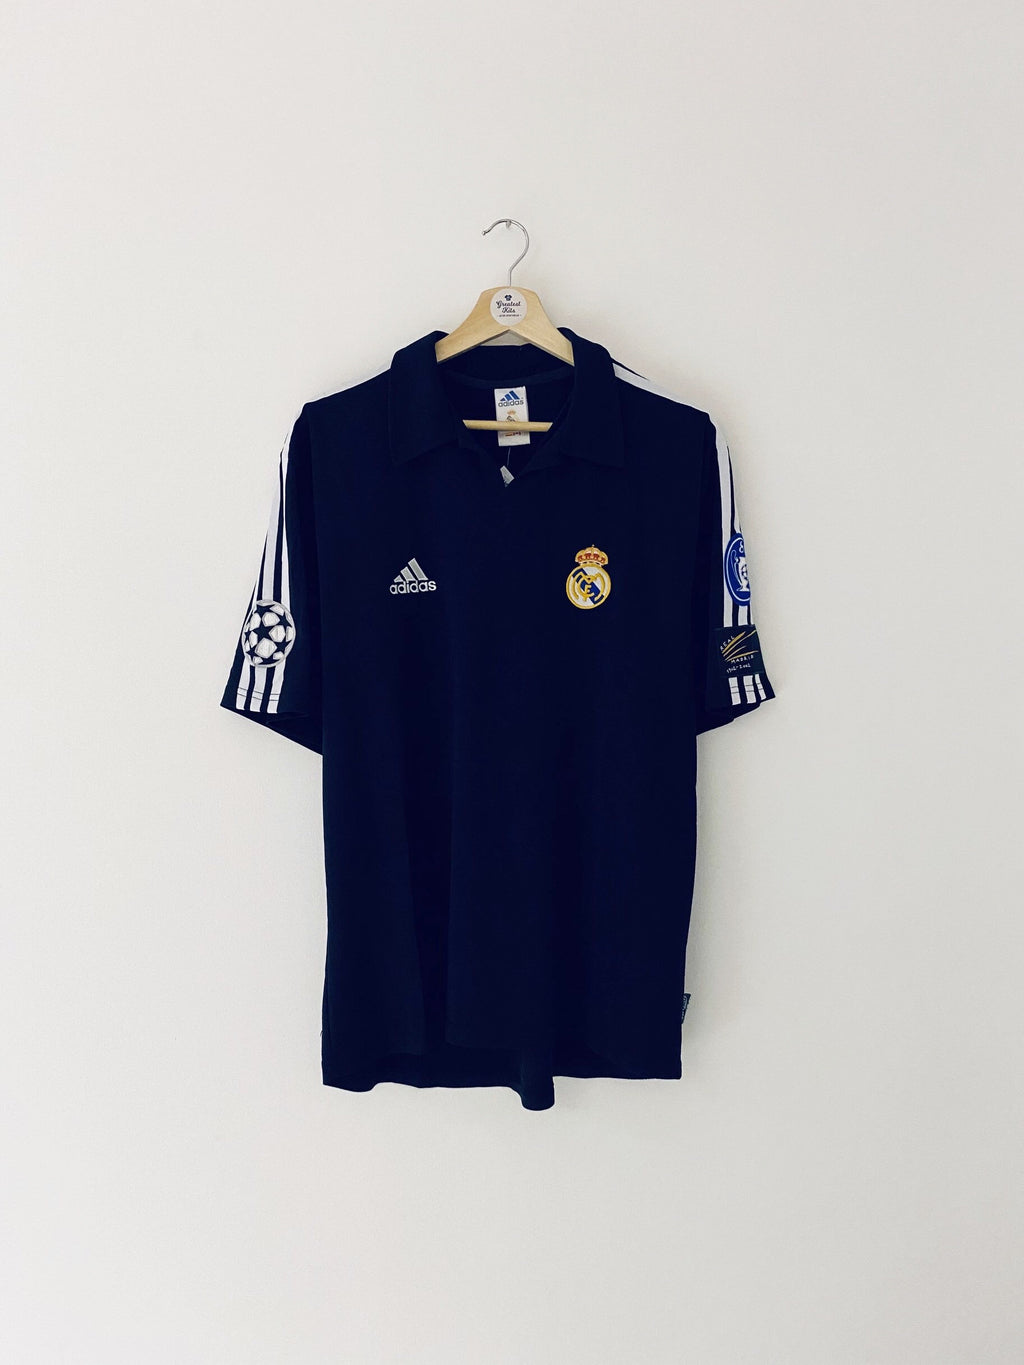 2001/02 Real Madrid Away CL Centenary Shirt (M) 5/10